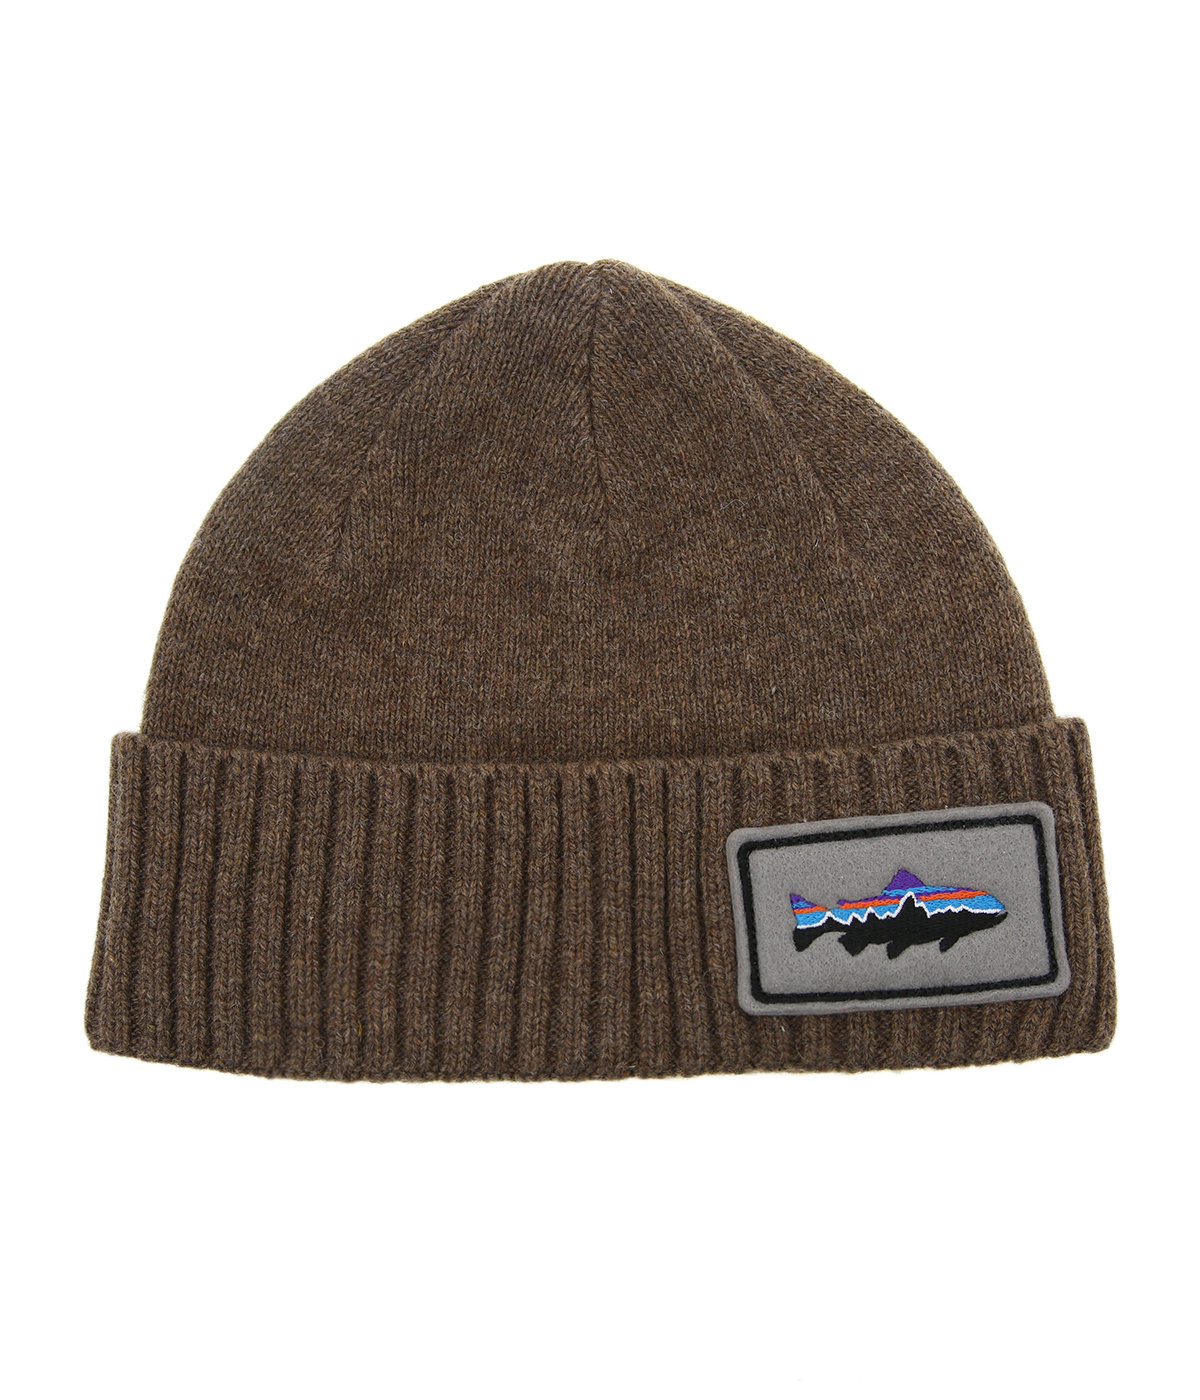 Brodeo Beanie -FPAT-